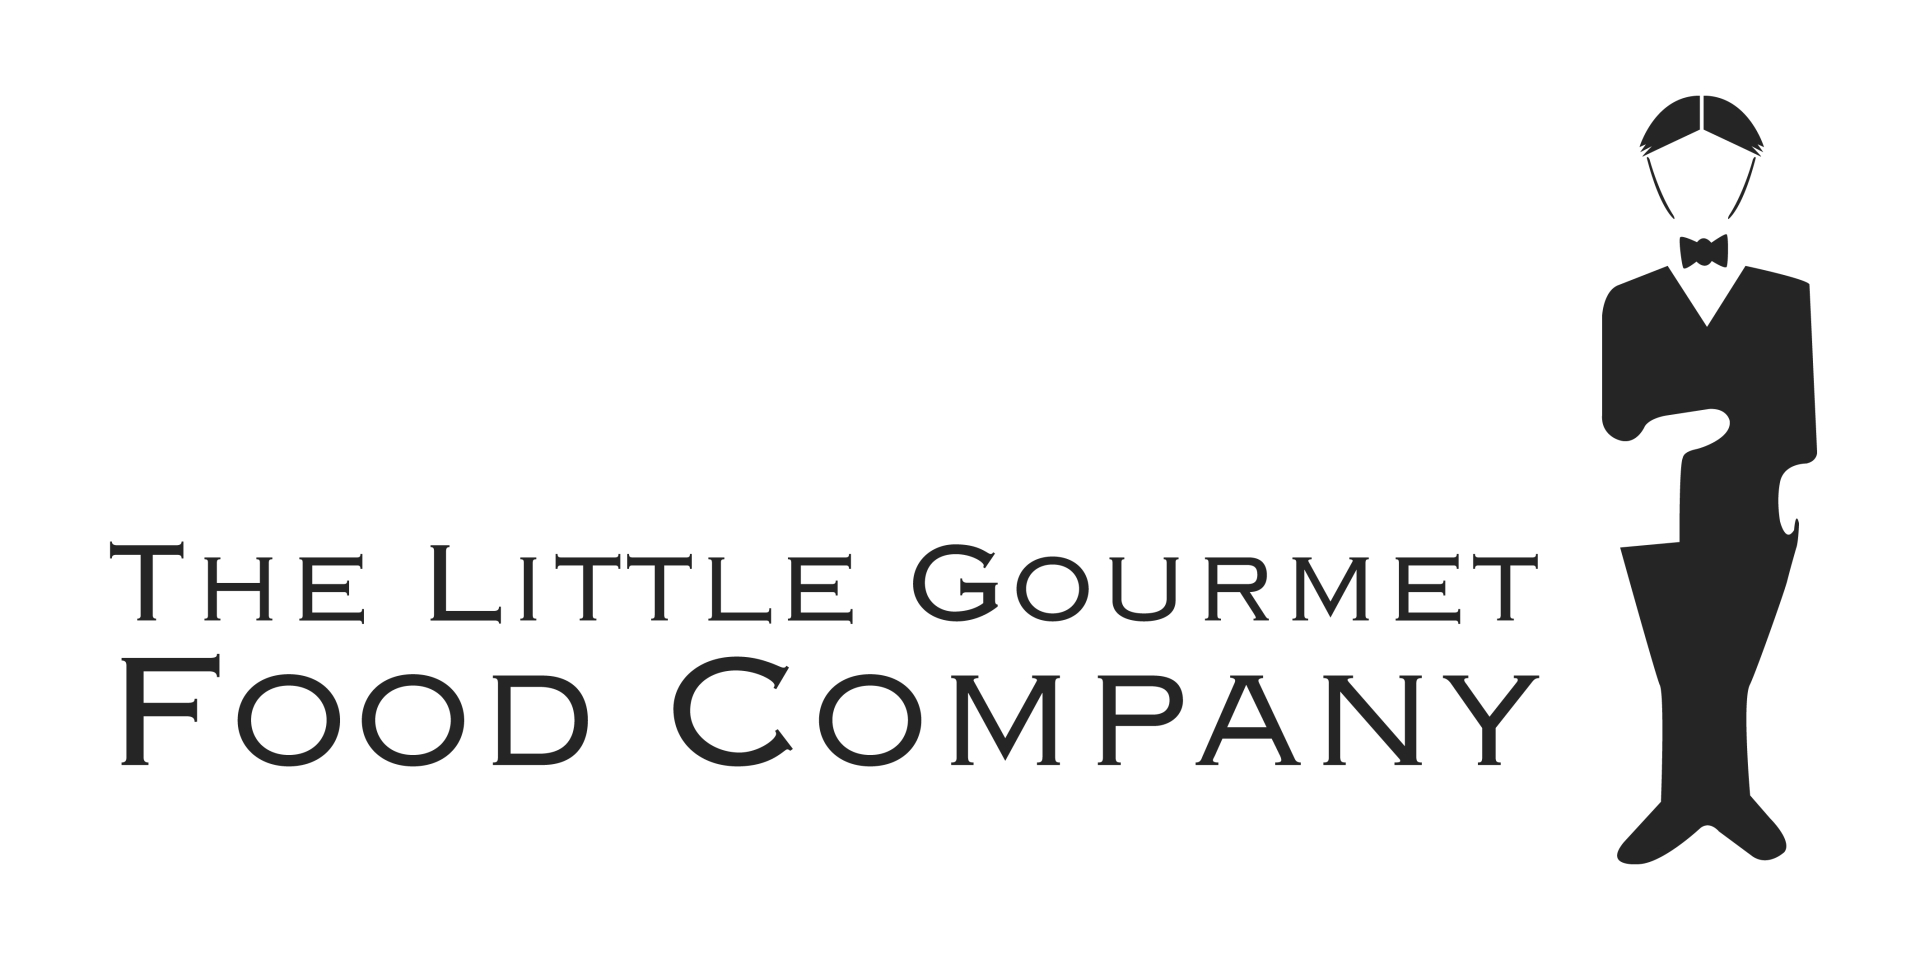 The Little Gourmet Food Company Beef Lasagne